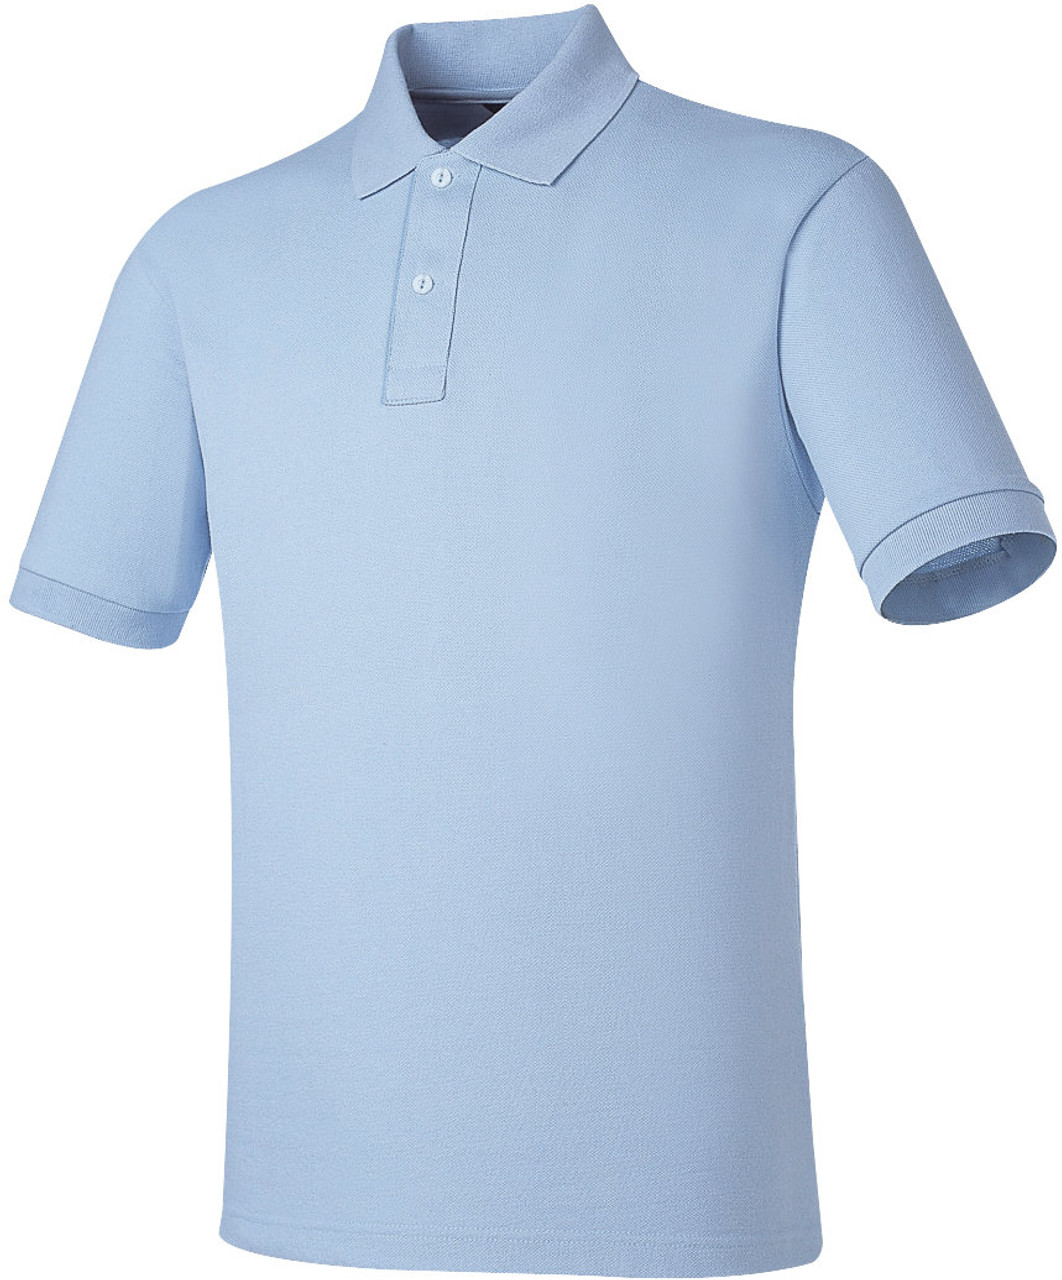 Sky Blue Cotton Pk Polo Shirt Side Placket